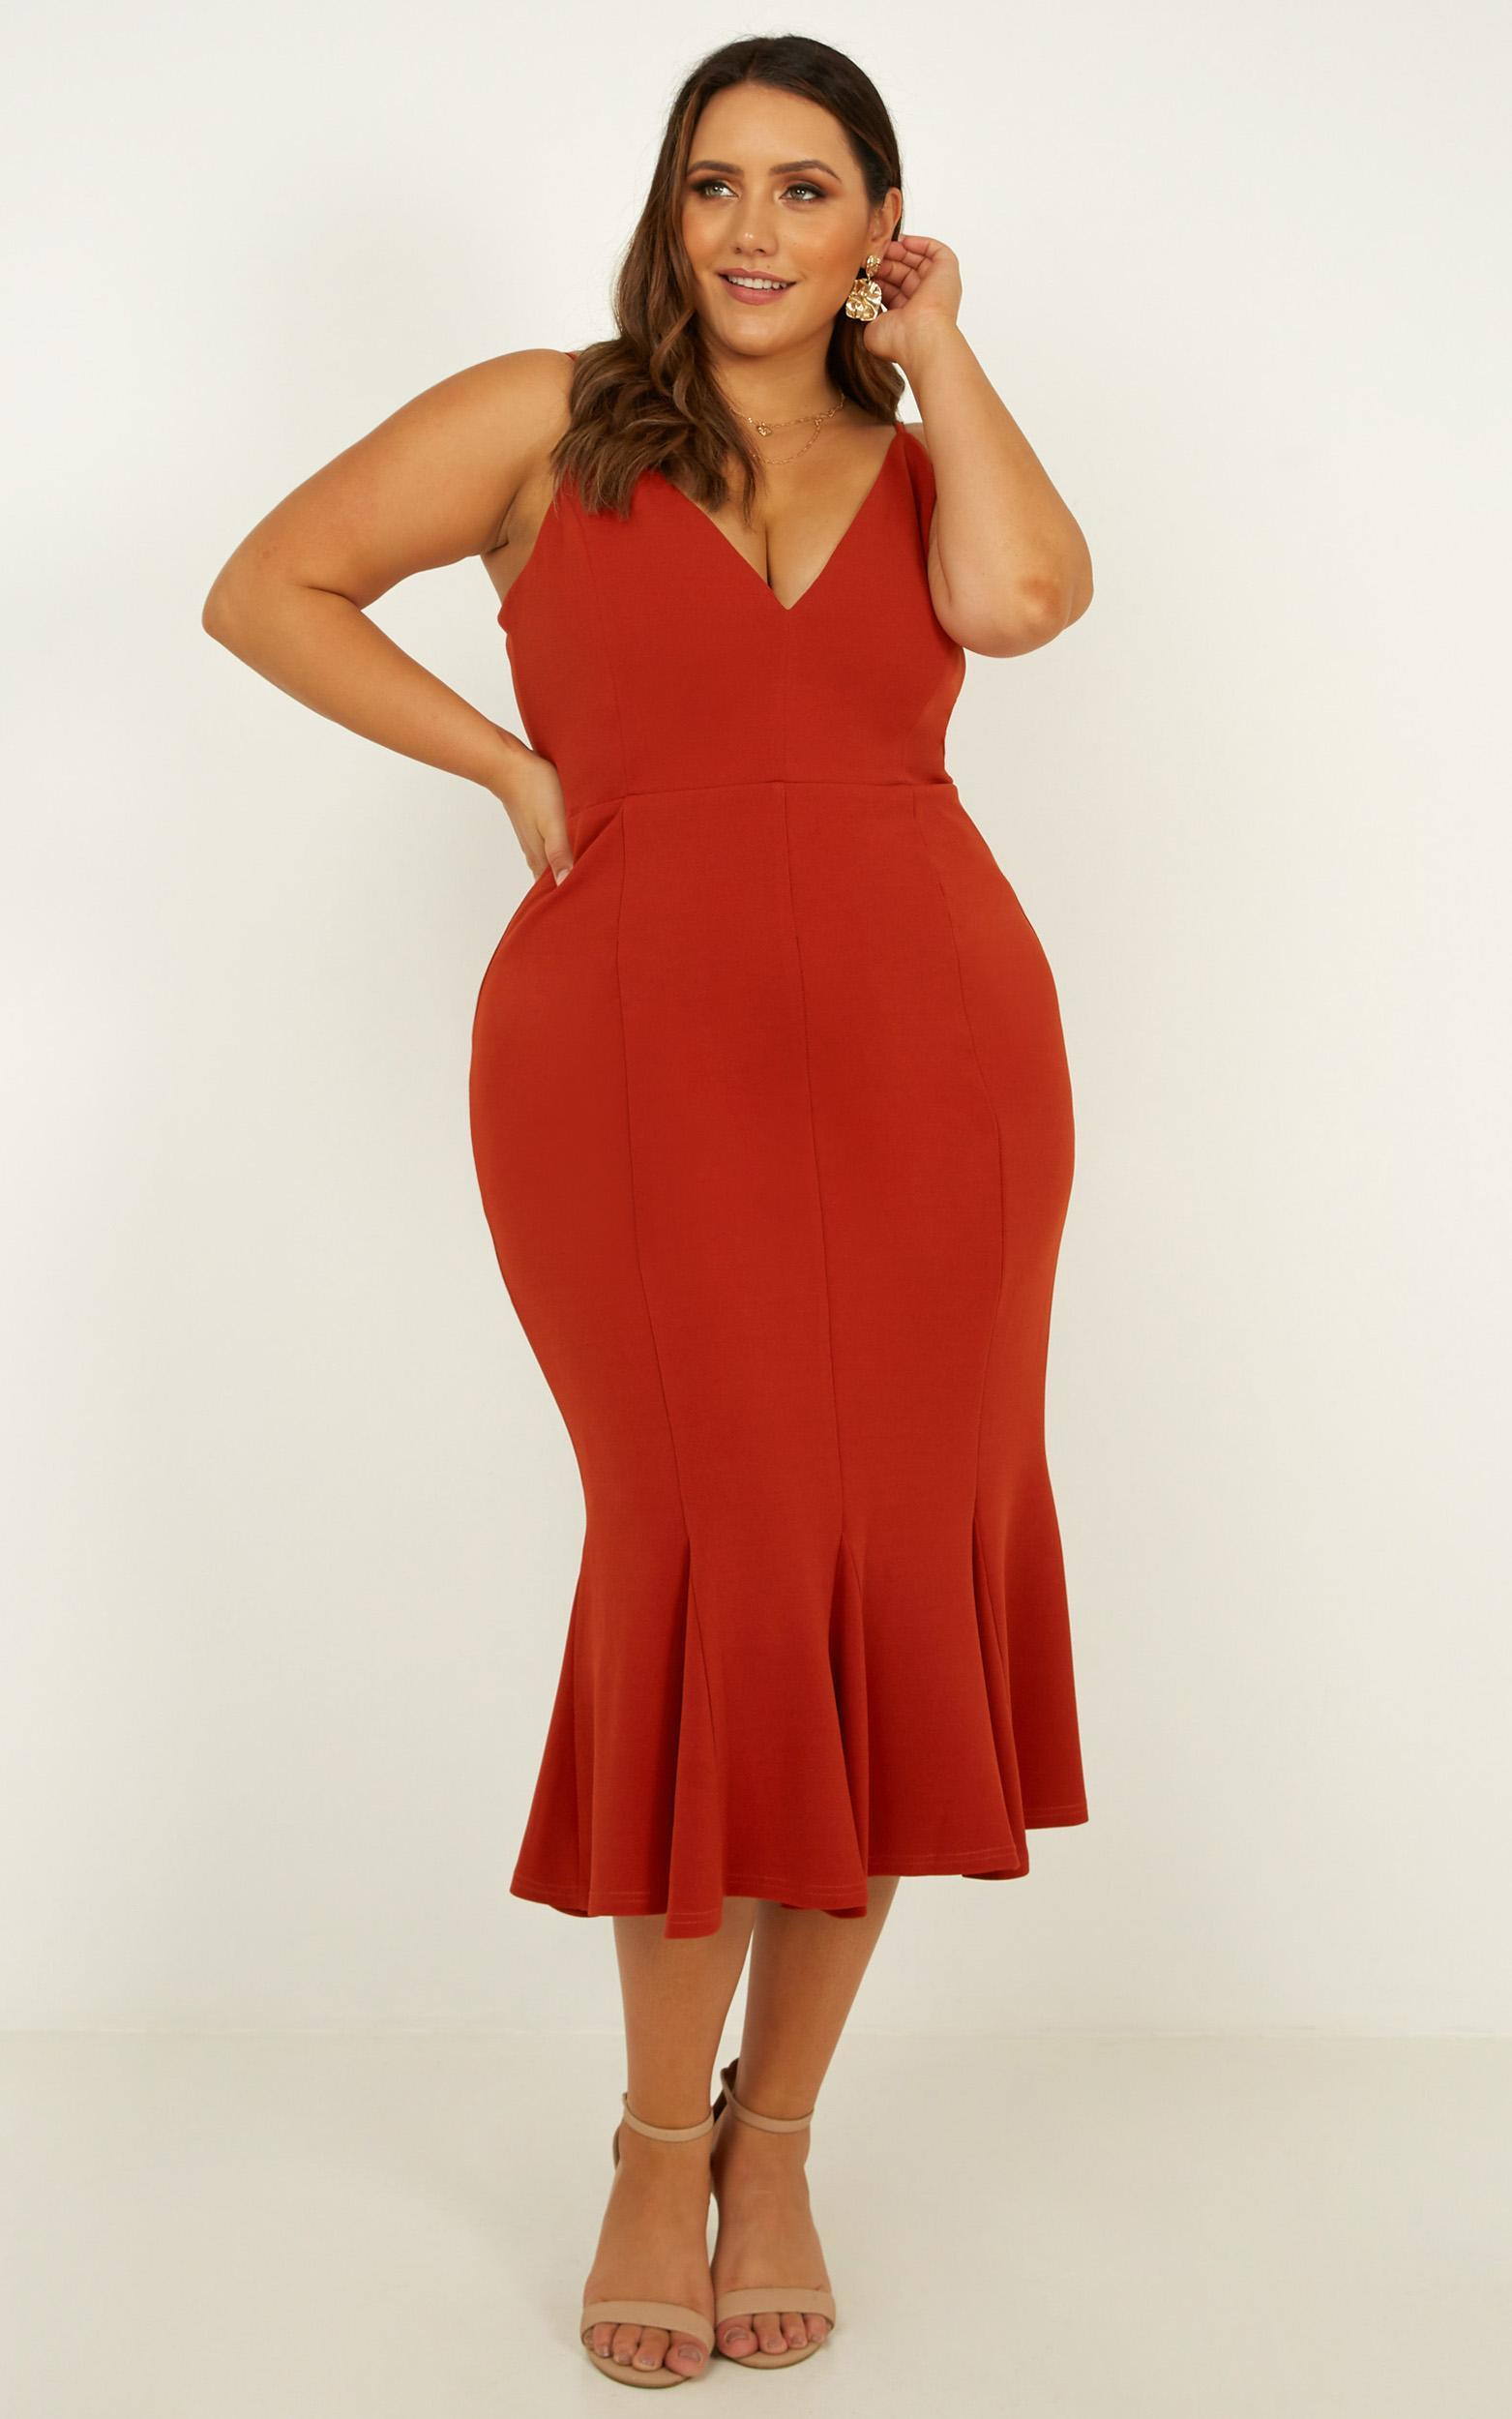 Get the girls over dress in rust - 20 (XXXXL), Rust, hi-res image number null